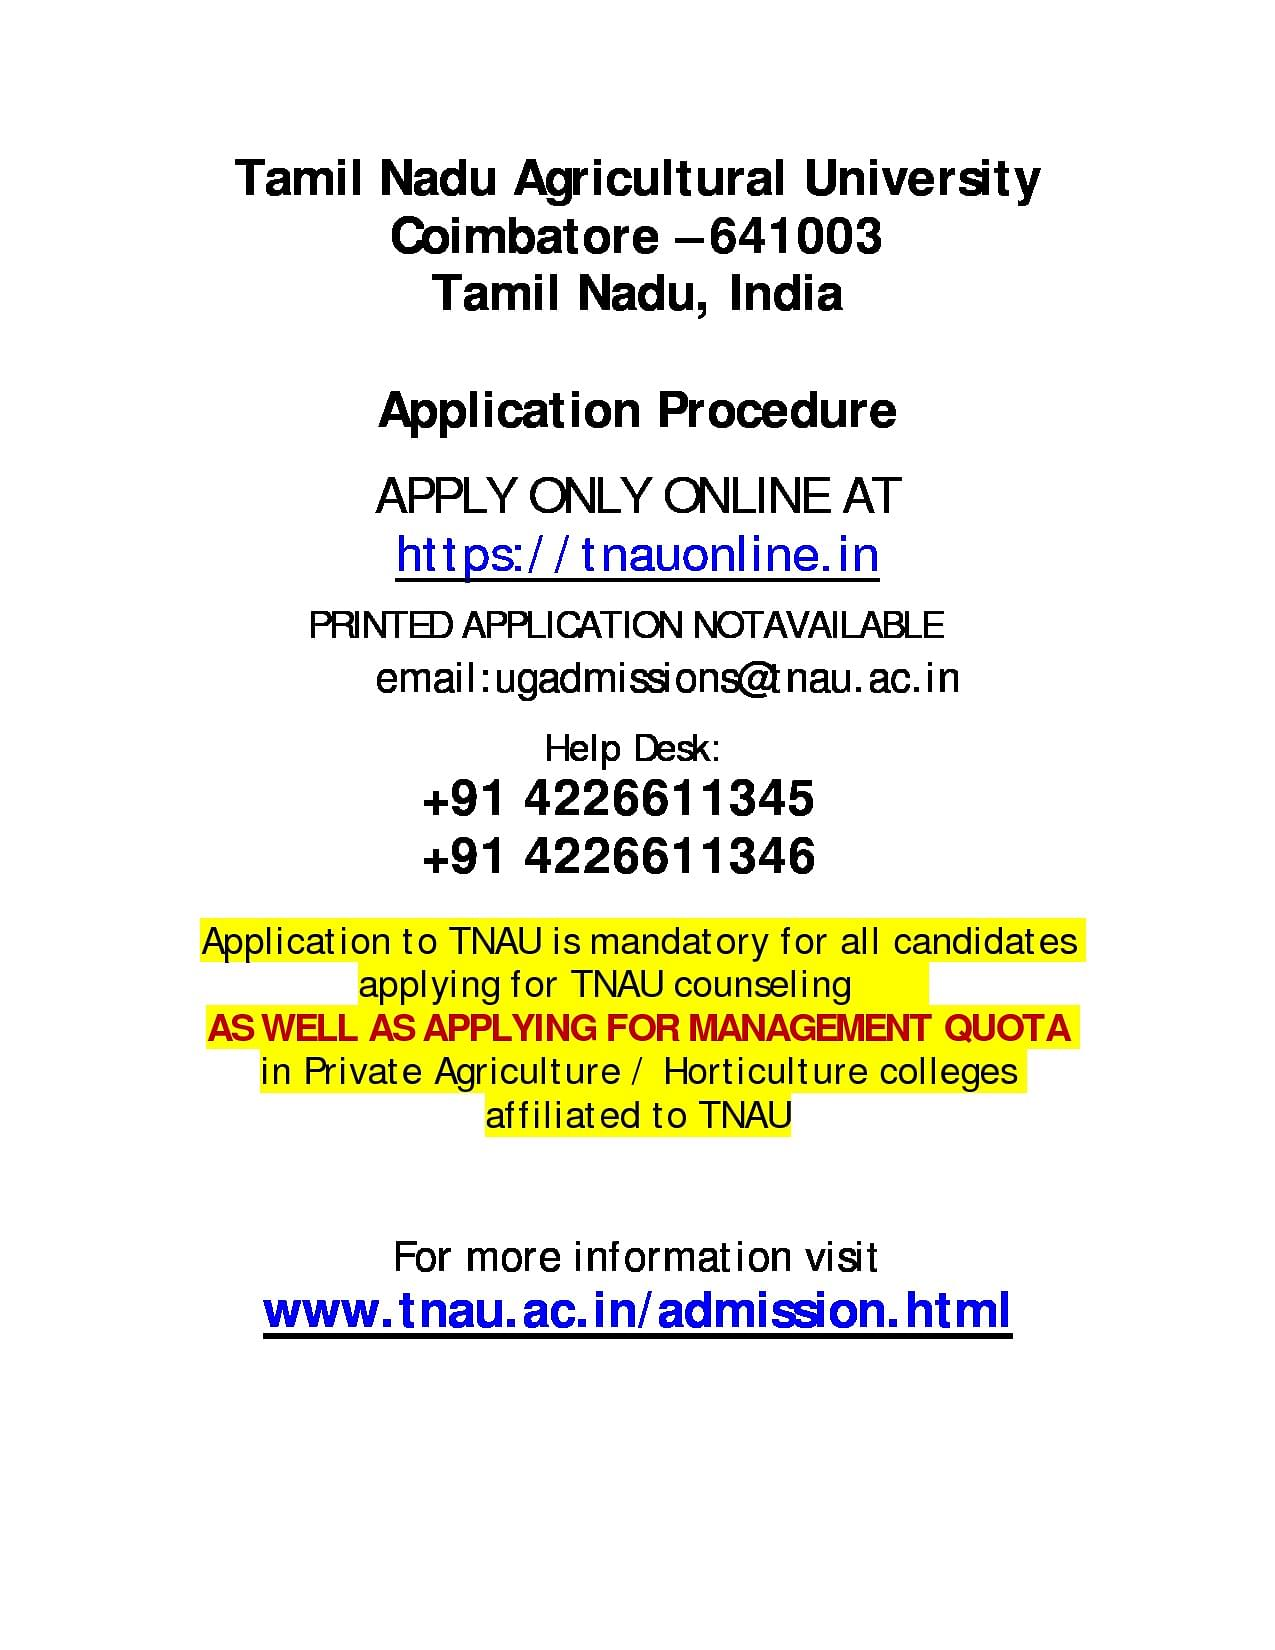 full-2 Tamil Nadu Medical Counselling Application Form on